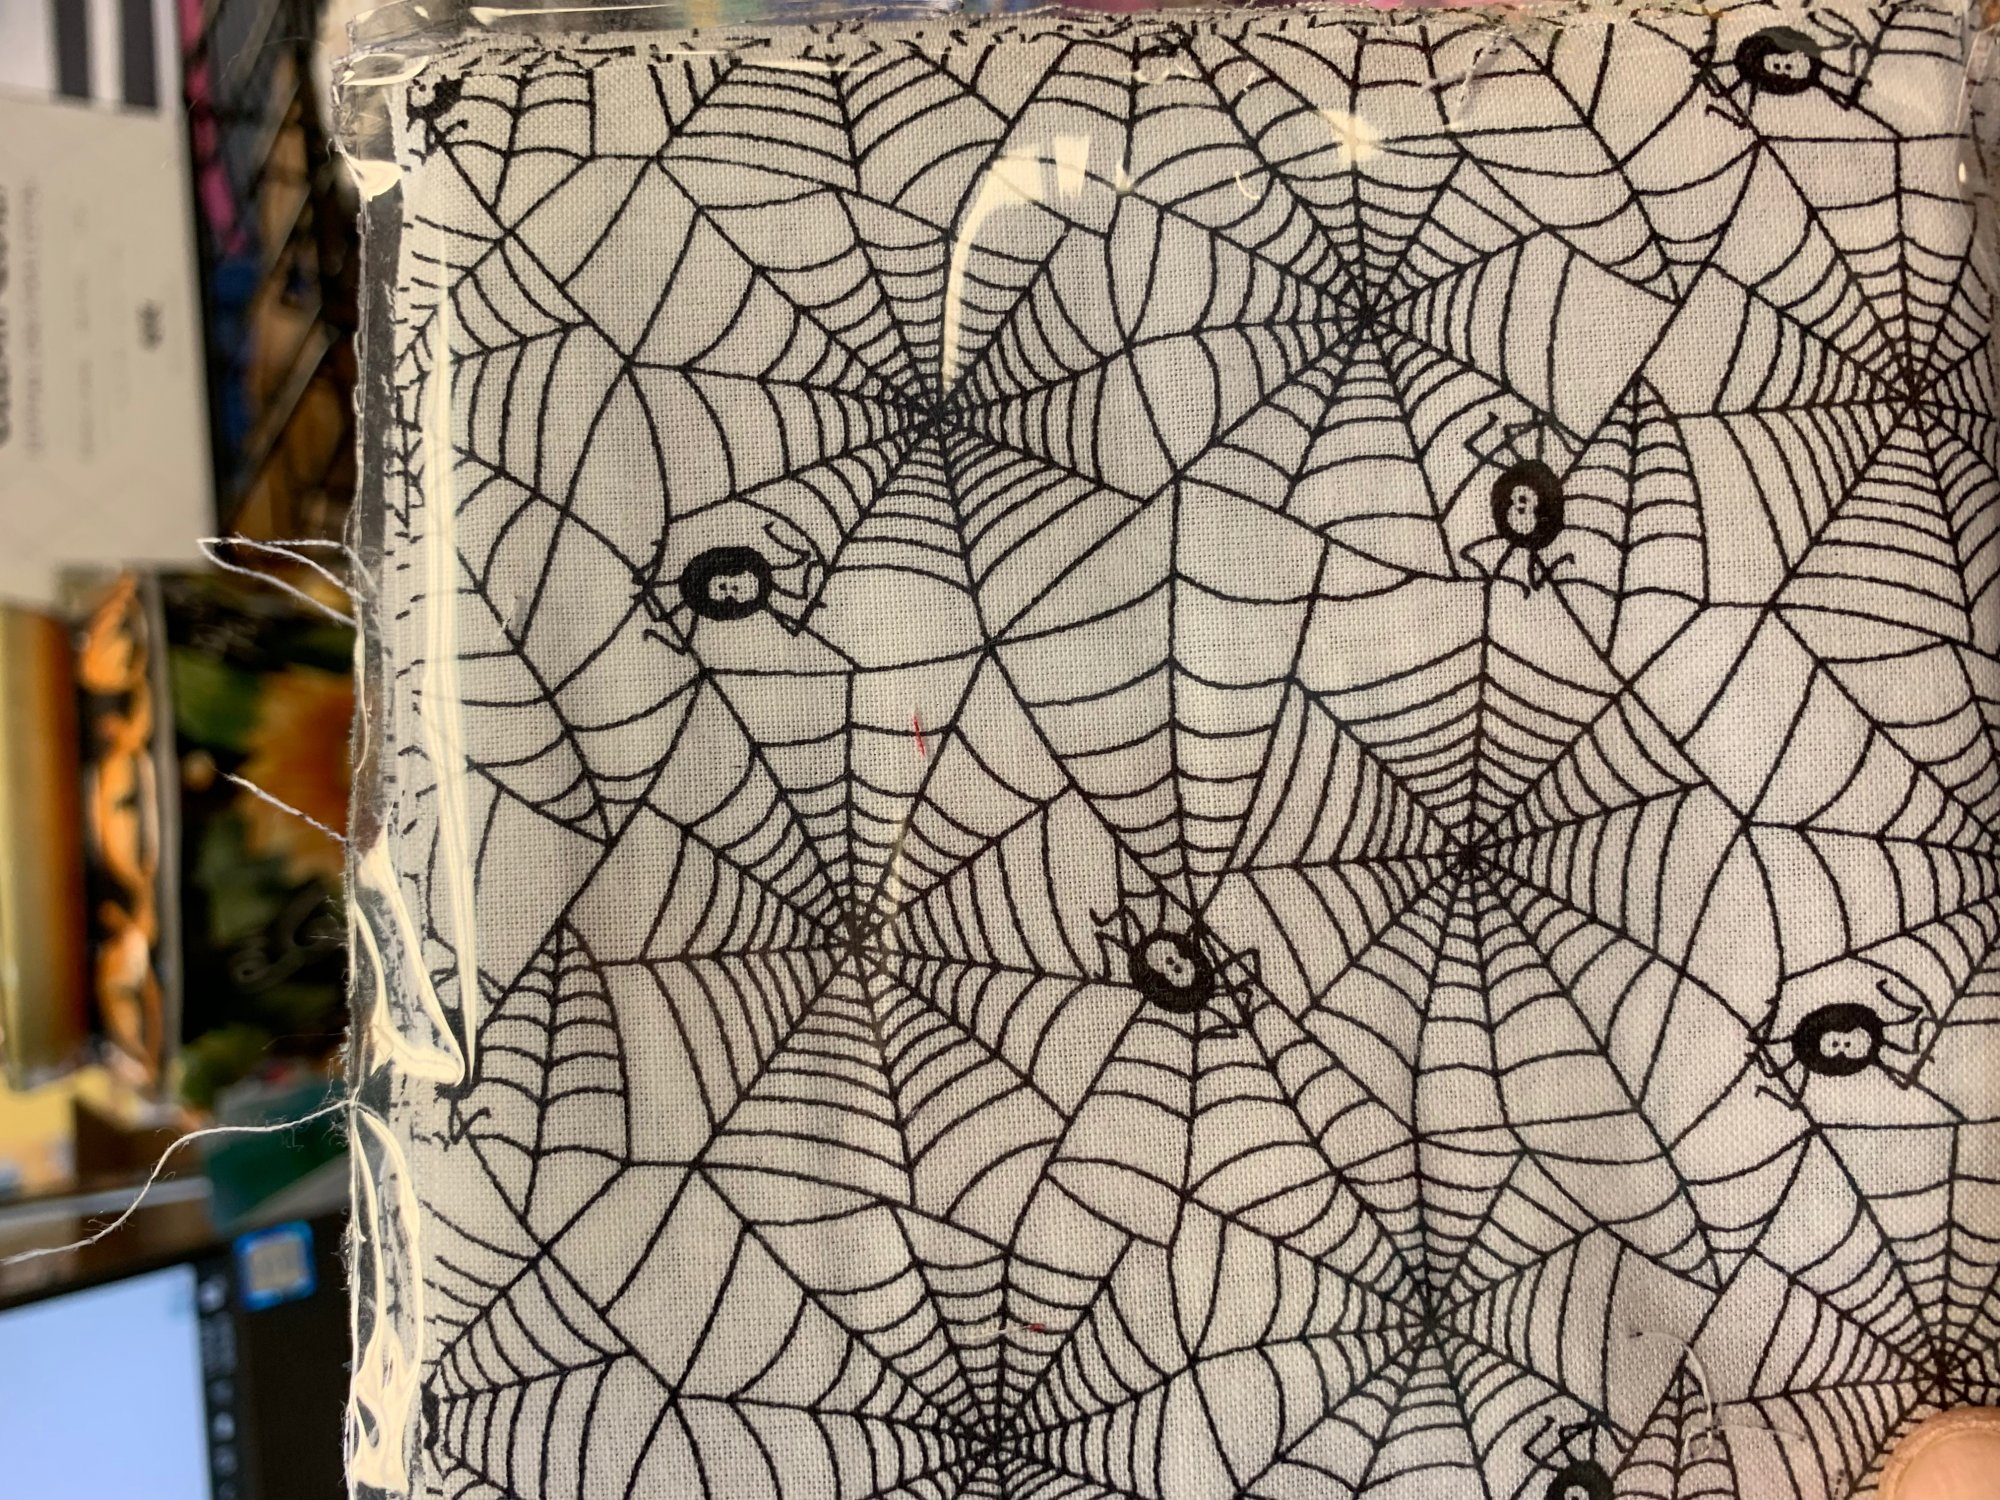 Spider Web w/spiders charms 42